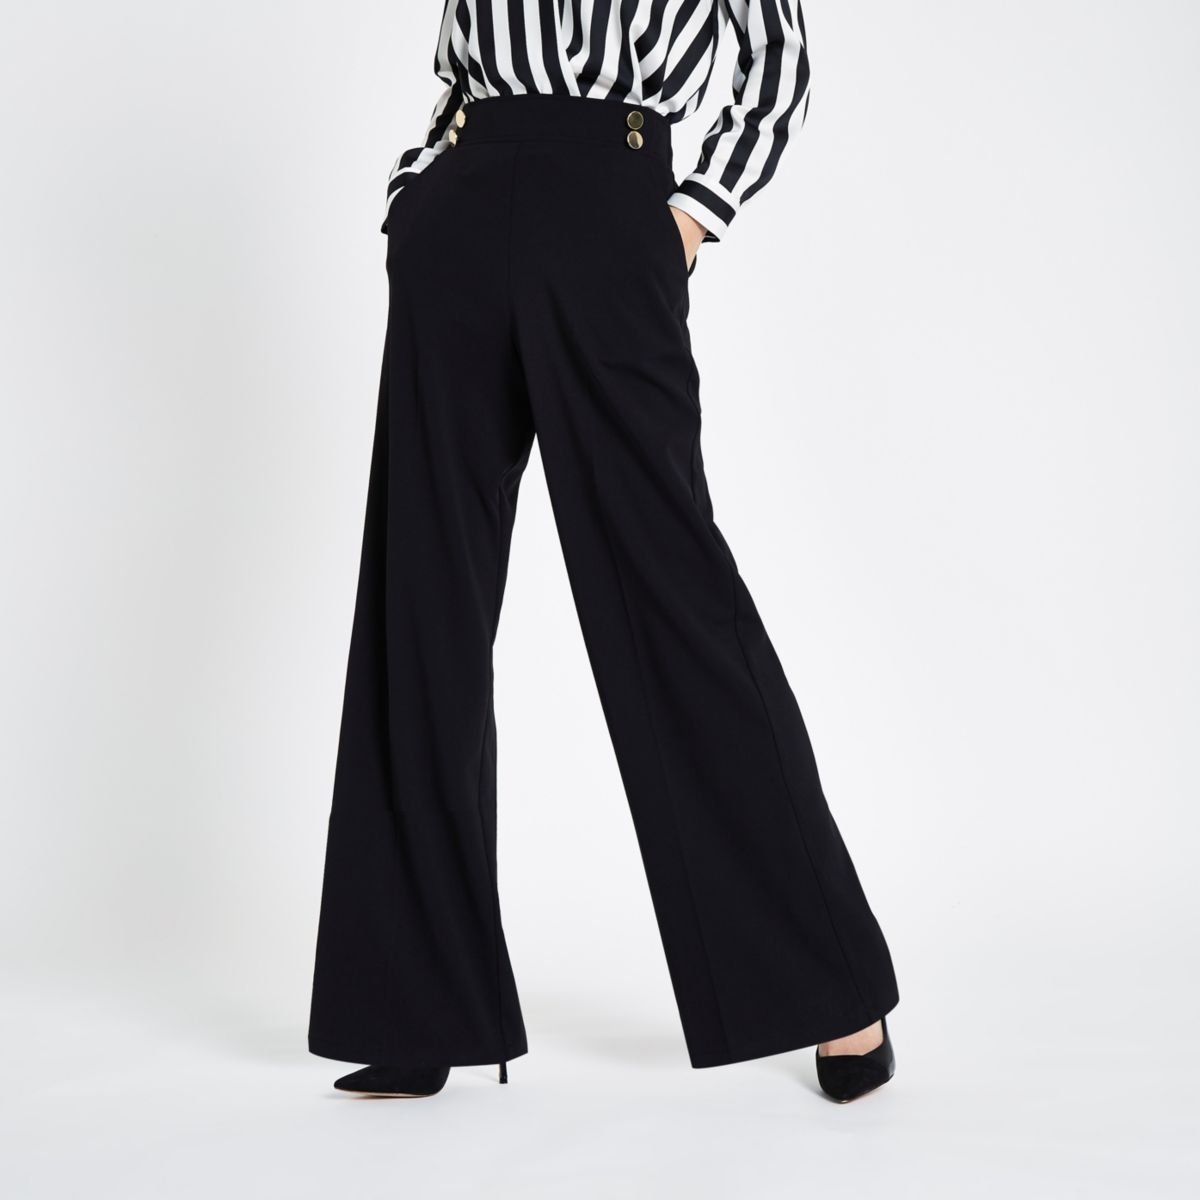 Black double button wide leg pull on pants